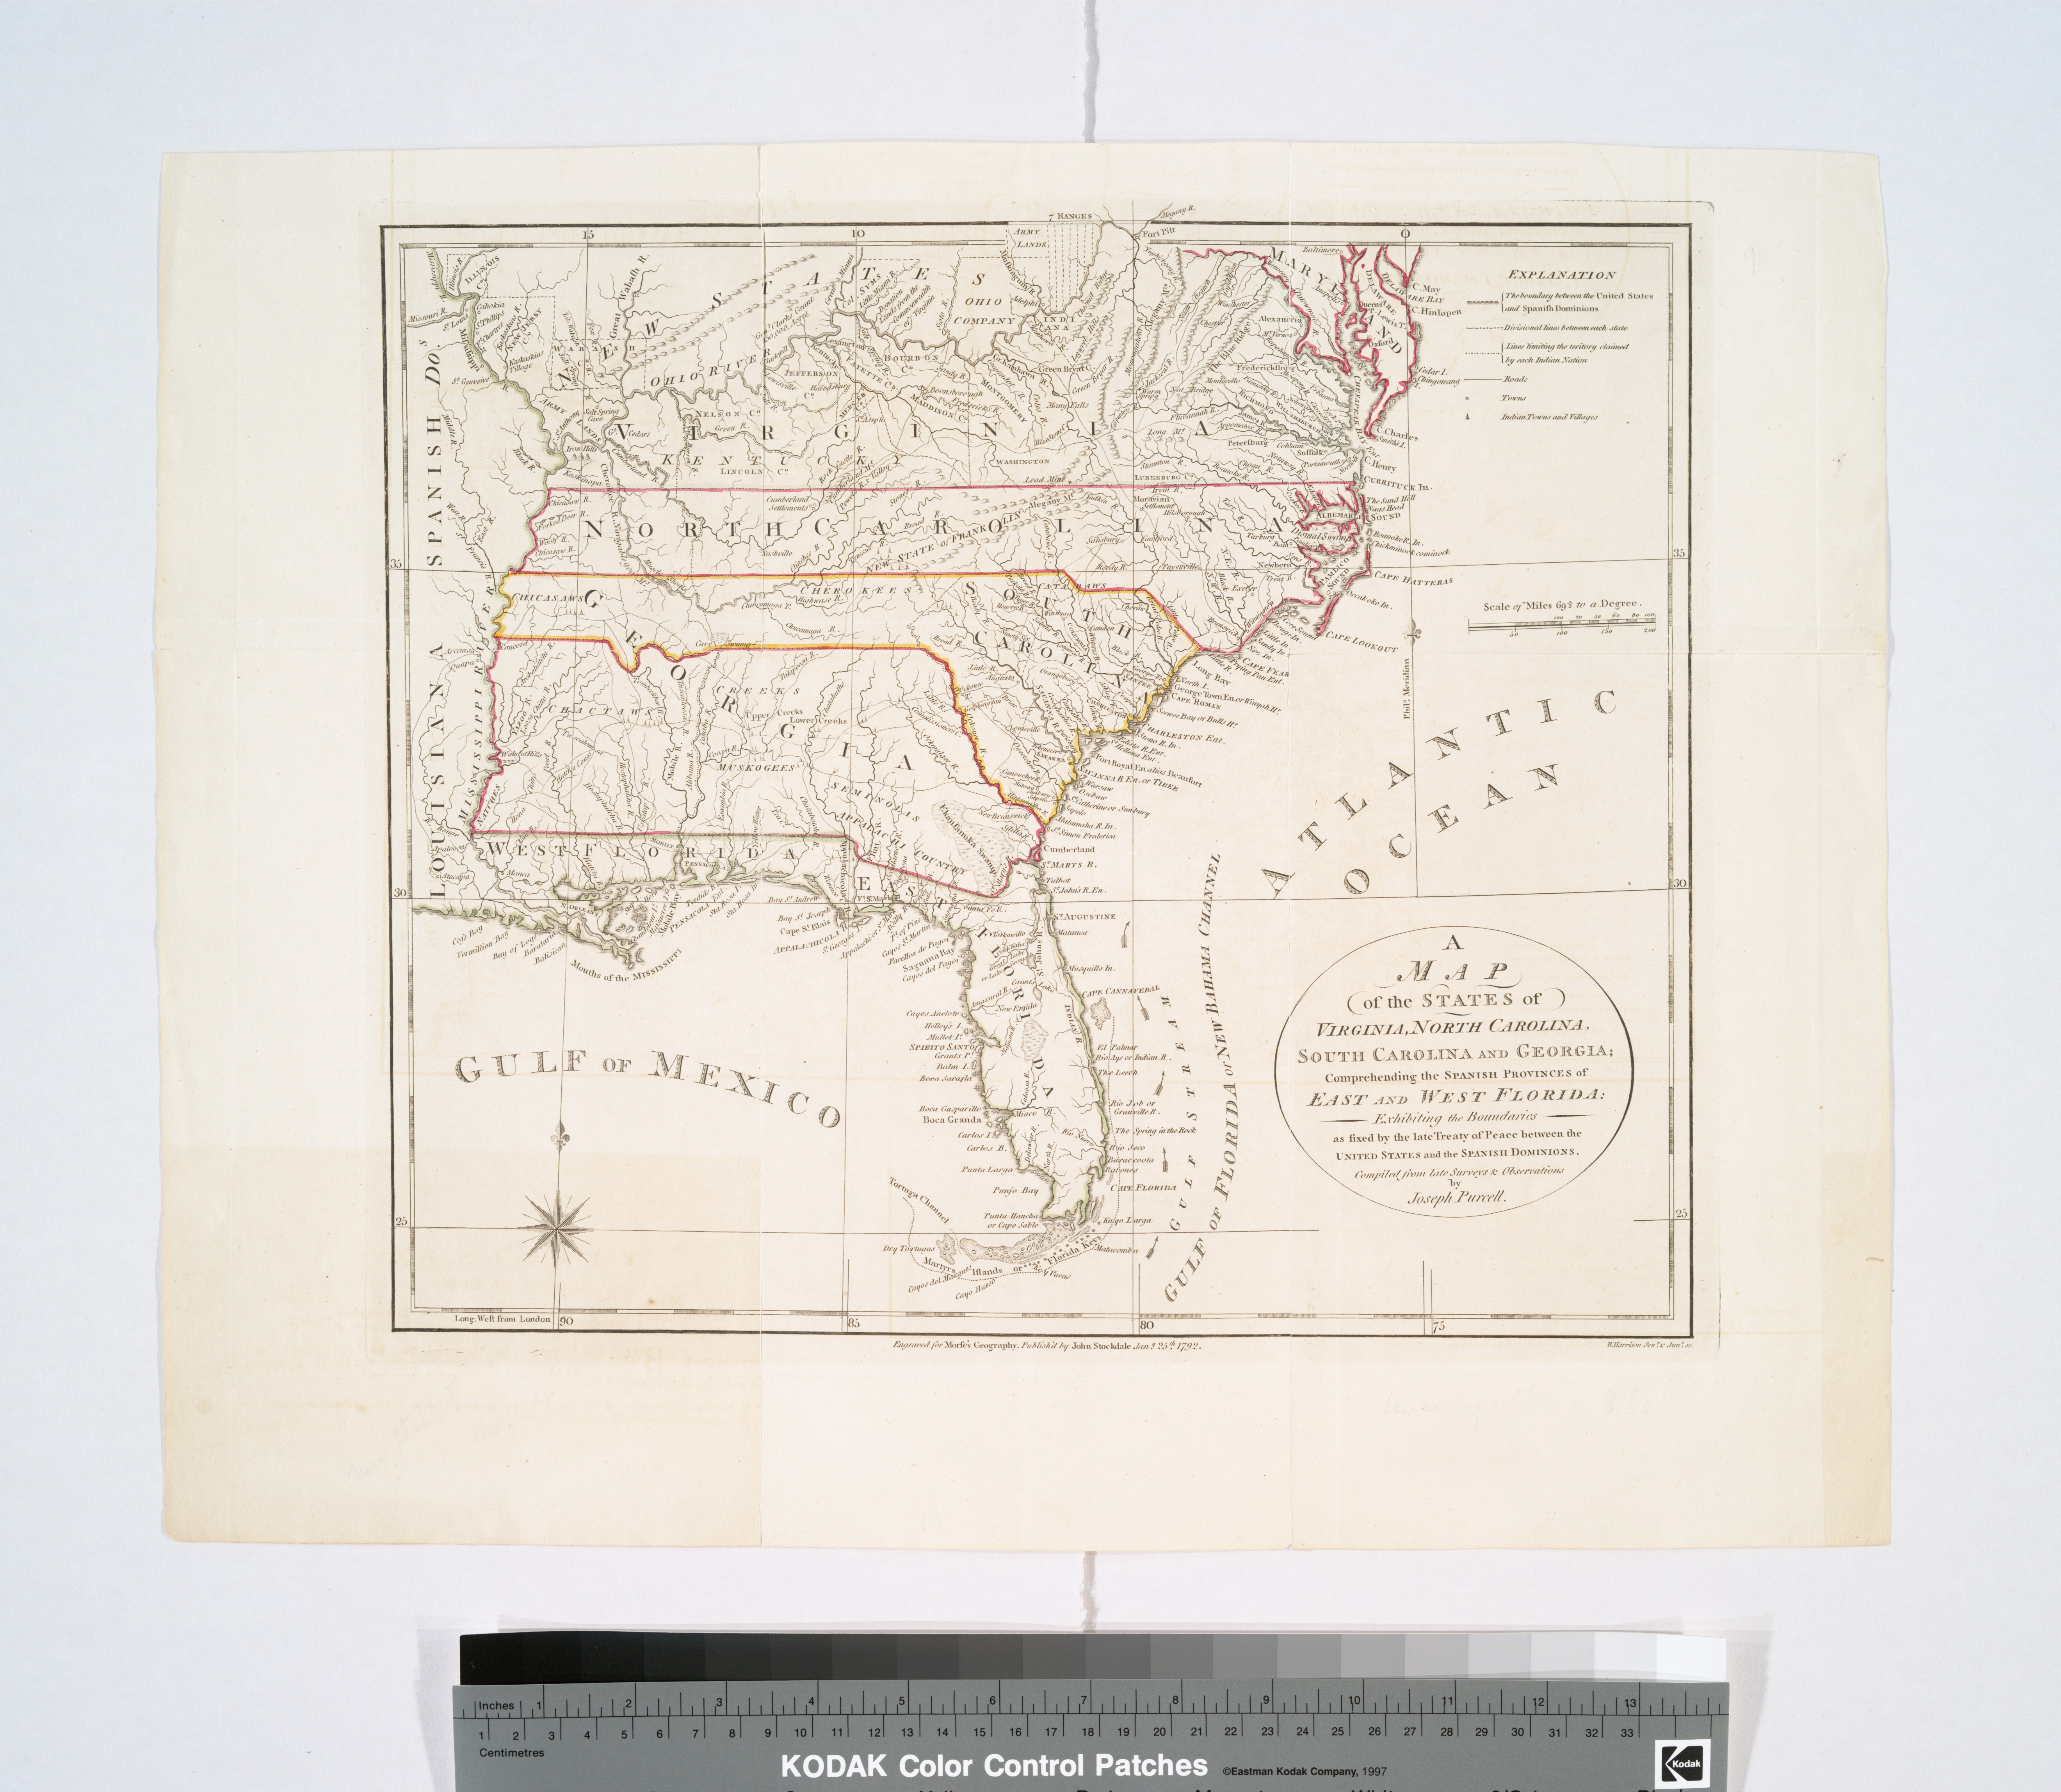 File:A map of the states of Virginia, North Carolina, South